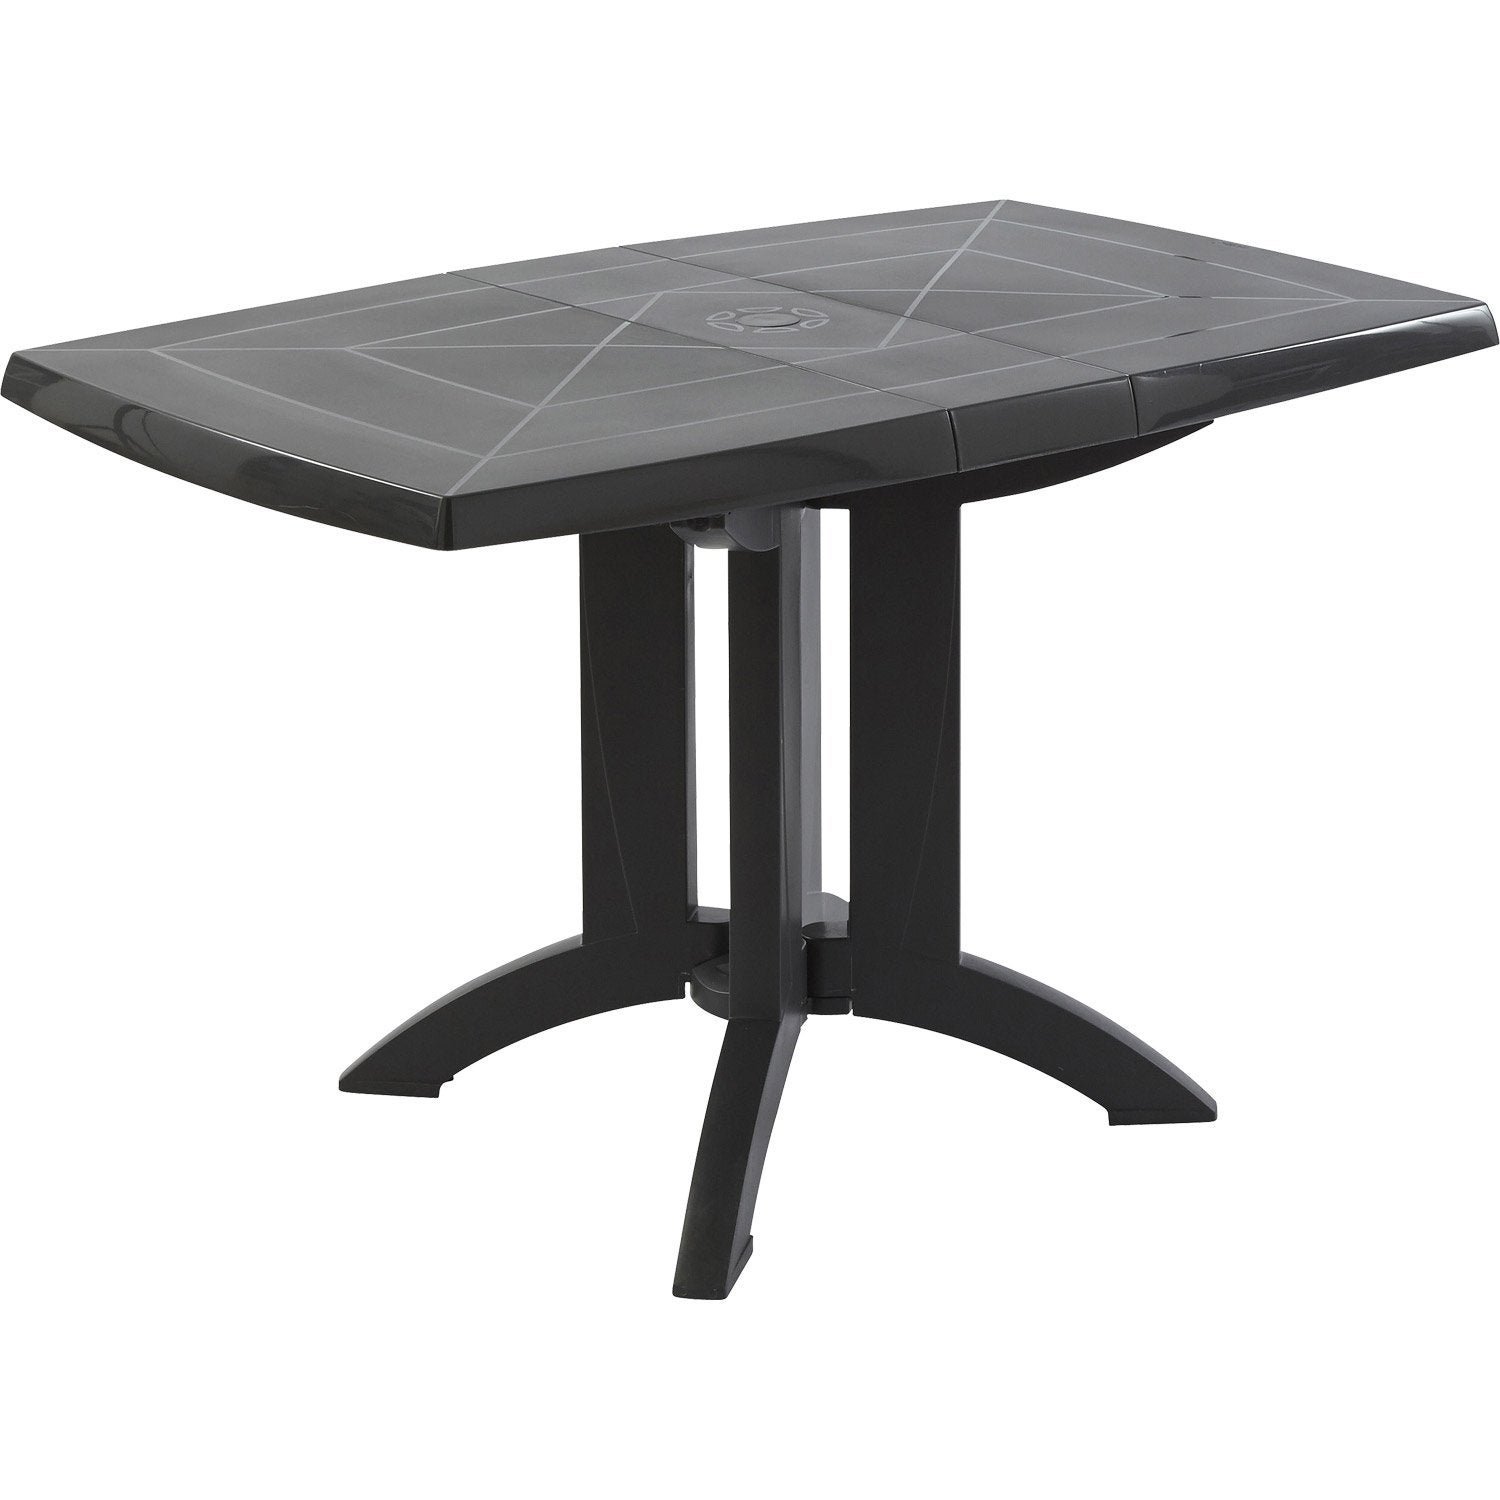 Table de jardin grosfillex v ga rectangulaire anthracite 4 for Table de salon pliable